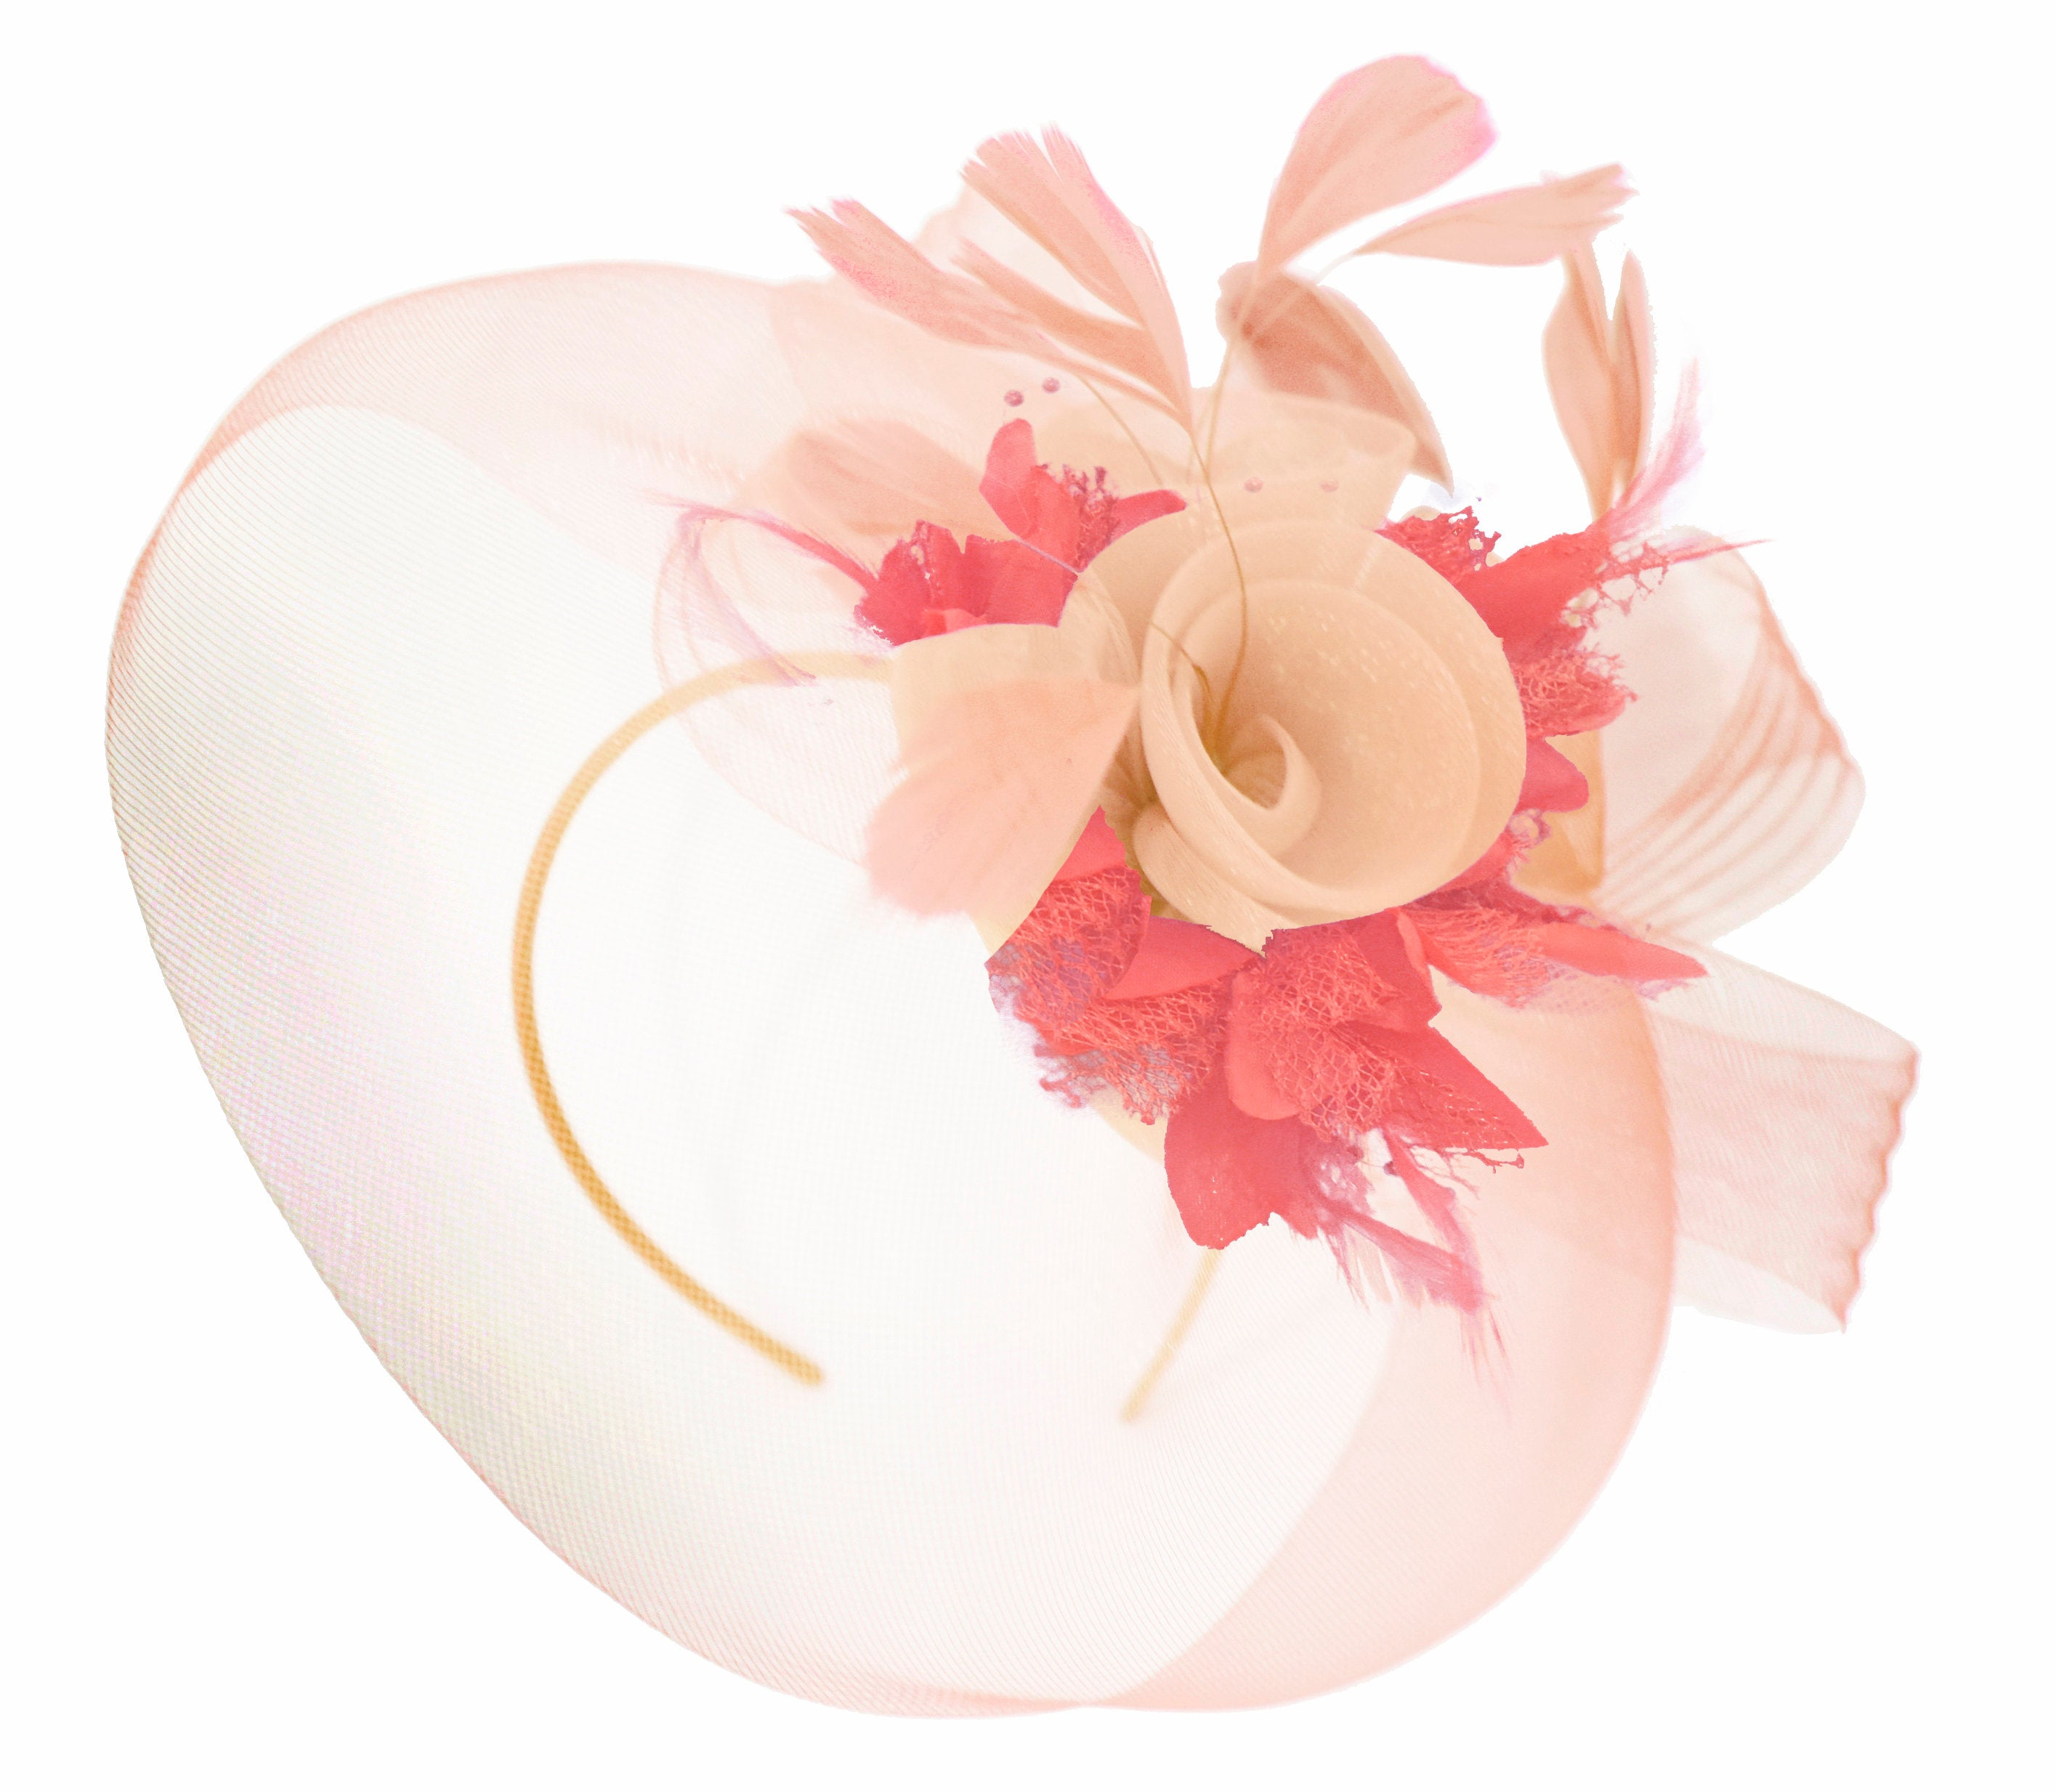 Caprilite Nude Pink Peach and Coral Red Fascinator Hat Veil Net Hair Clip Ascot Derby Races Wedding Headband Feather Flower